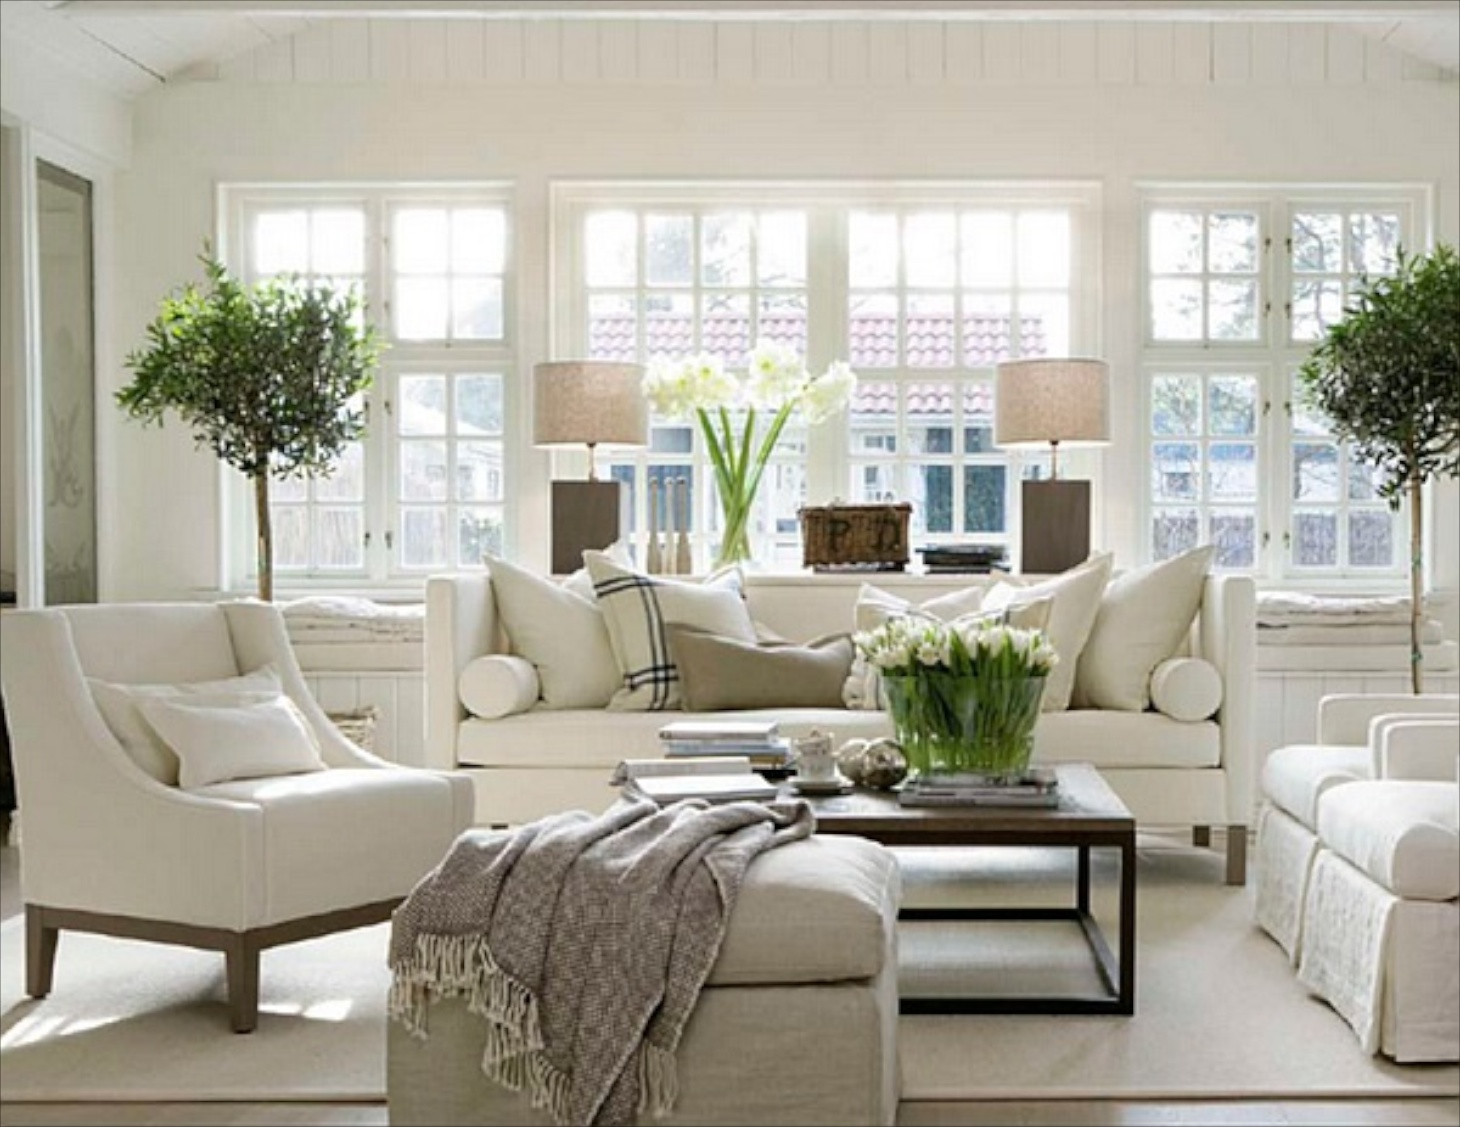 Http Whimsicalhomeandgarden Com The Power Of White Decor 22 Cozy Traditional Living Room Indoor Plant Modern White Decor Whg